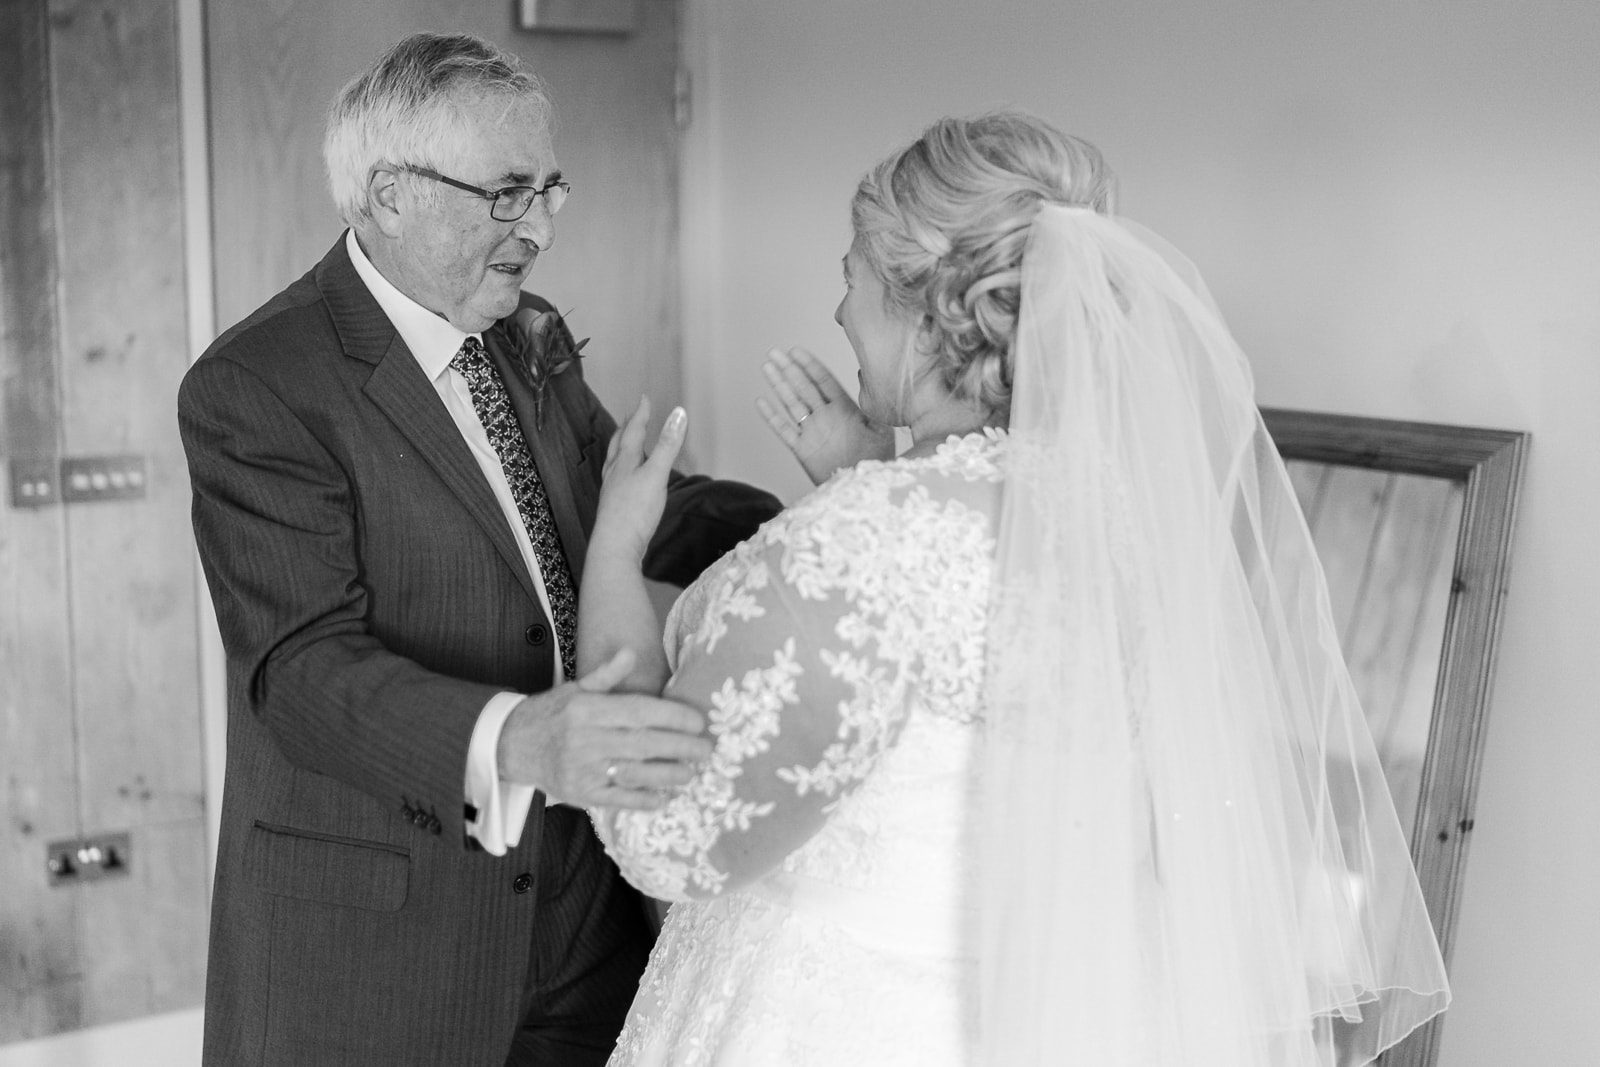 The Carriage Hall Wedding Photography - Bride seeing her dad for the first time on her wedding day